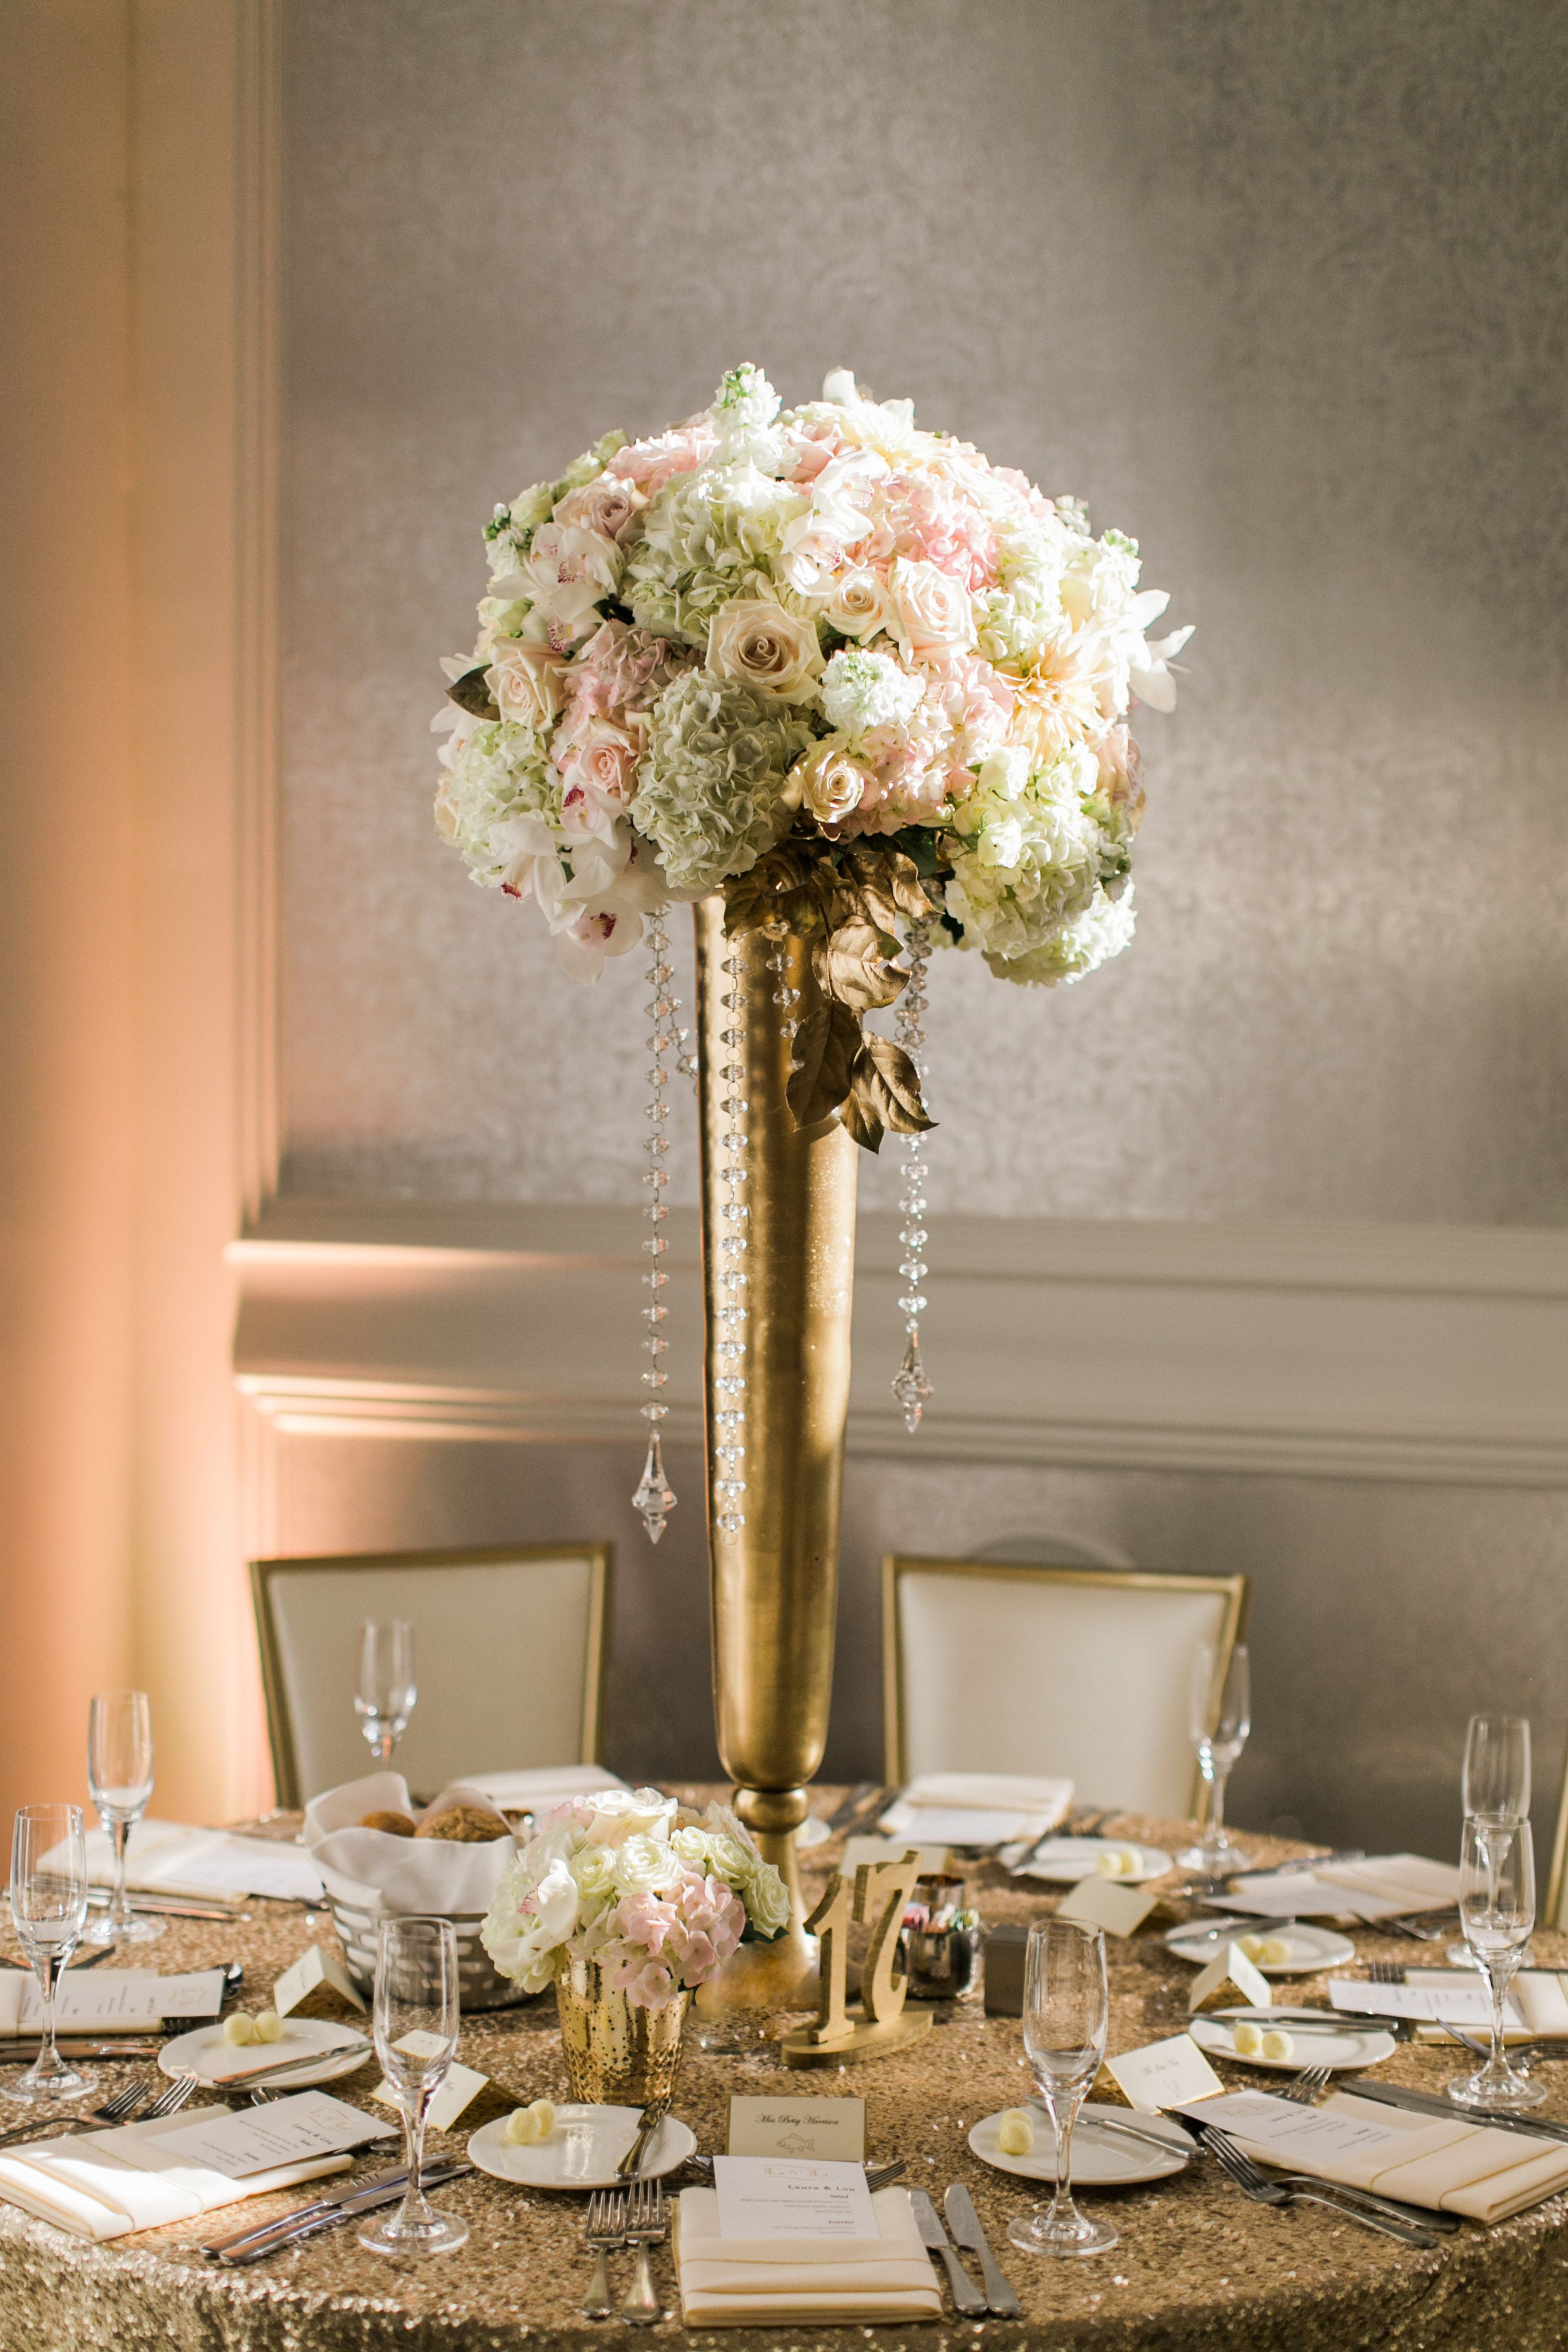 floral vases for sale of sweet looking tall vase centerpiece party decorations surprising intended for extraordinary tall vase centerpiece gold bridal ideas pinterest scheme of arrangements centerpieces diy